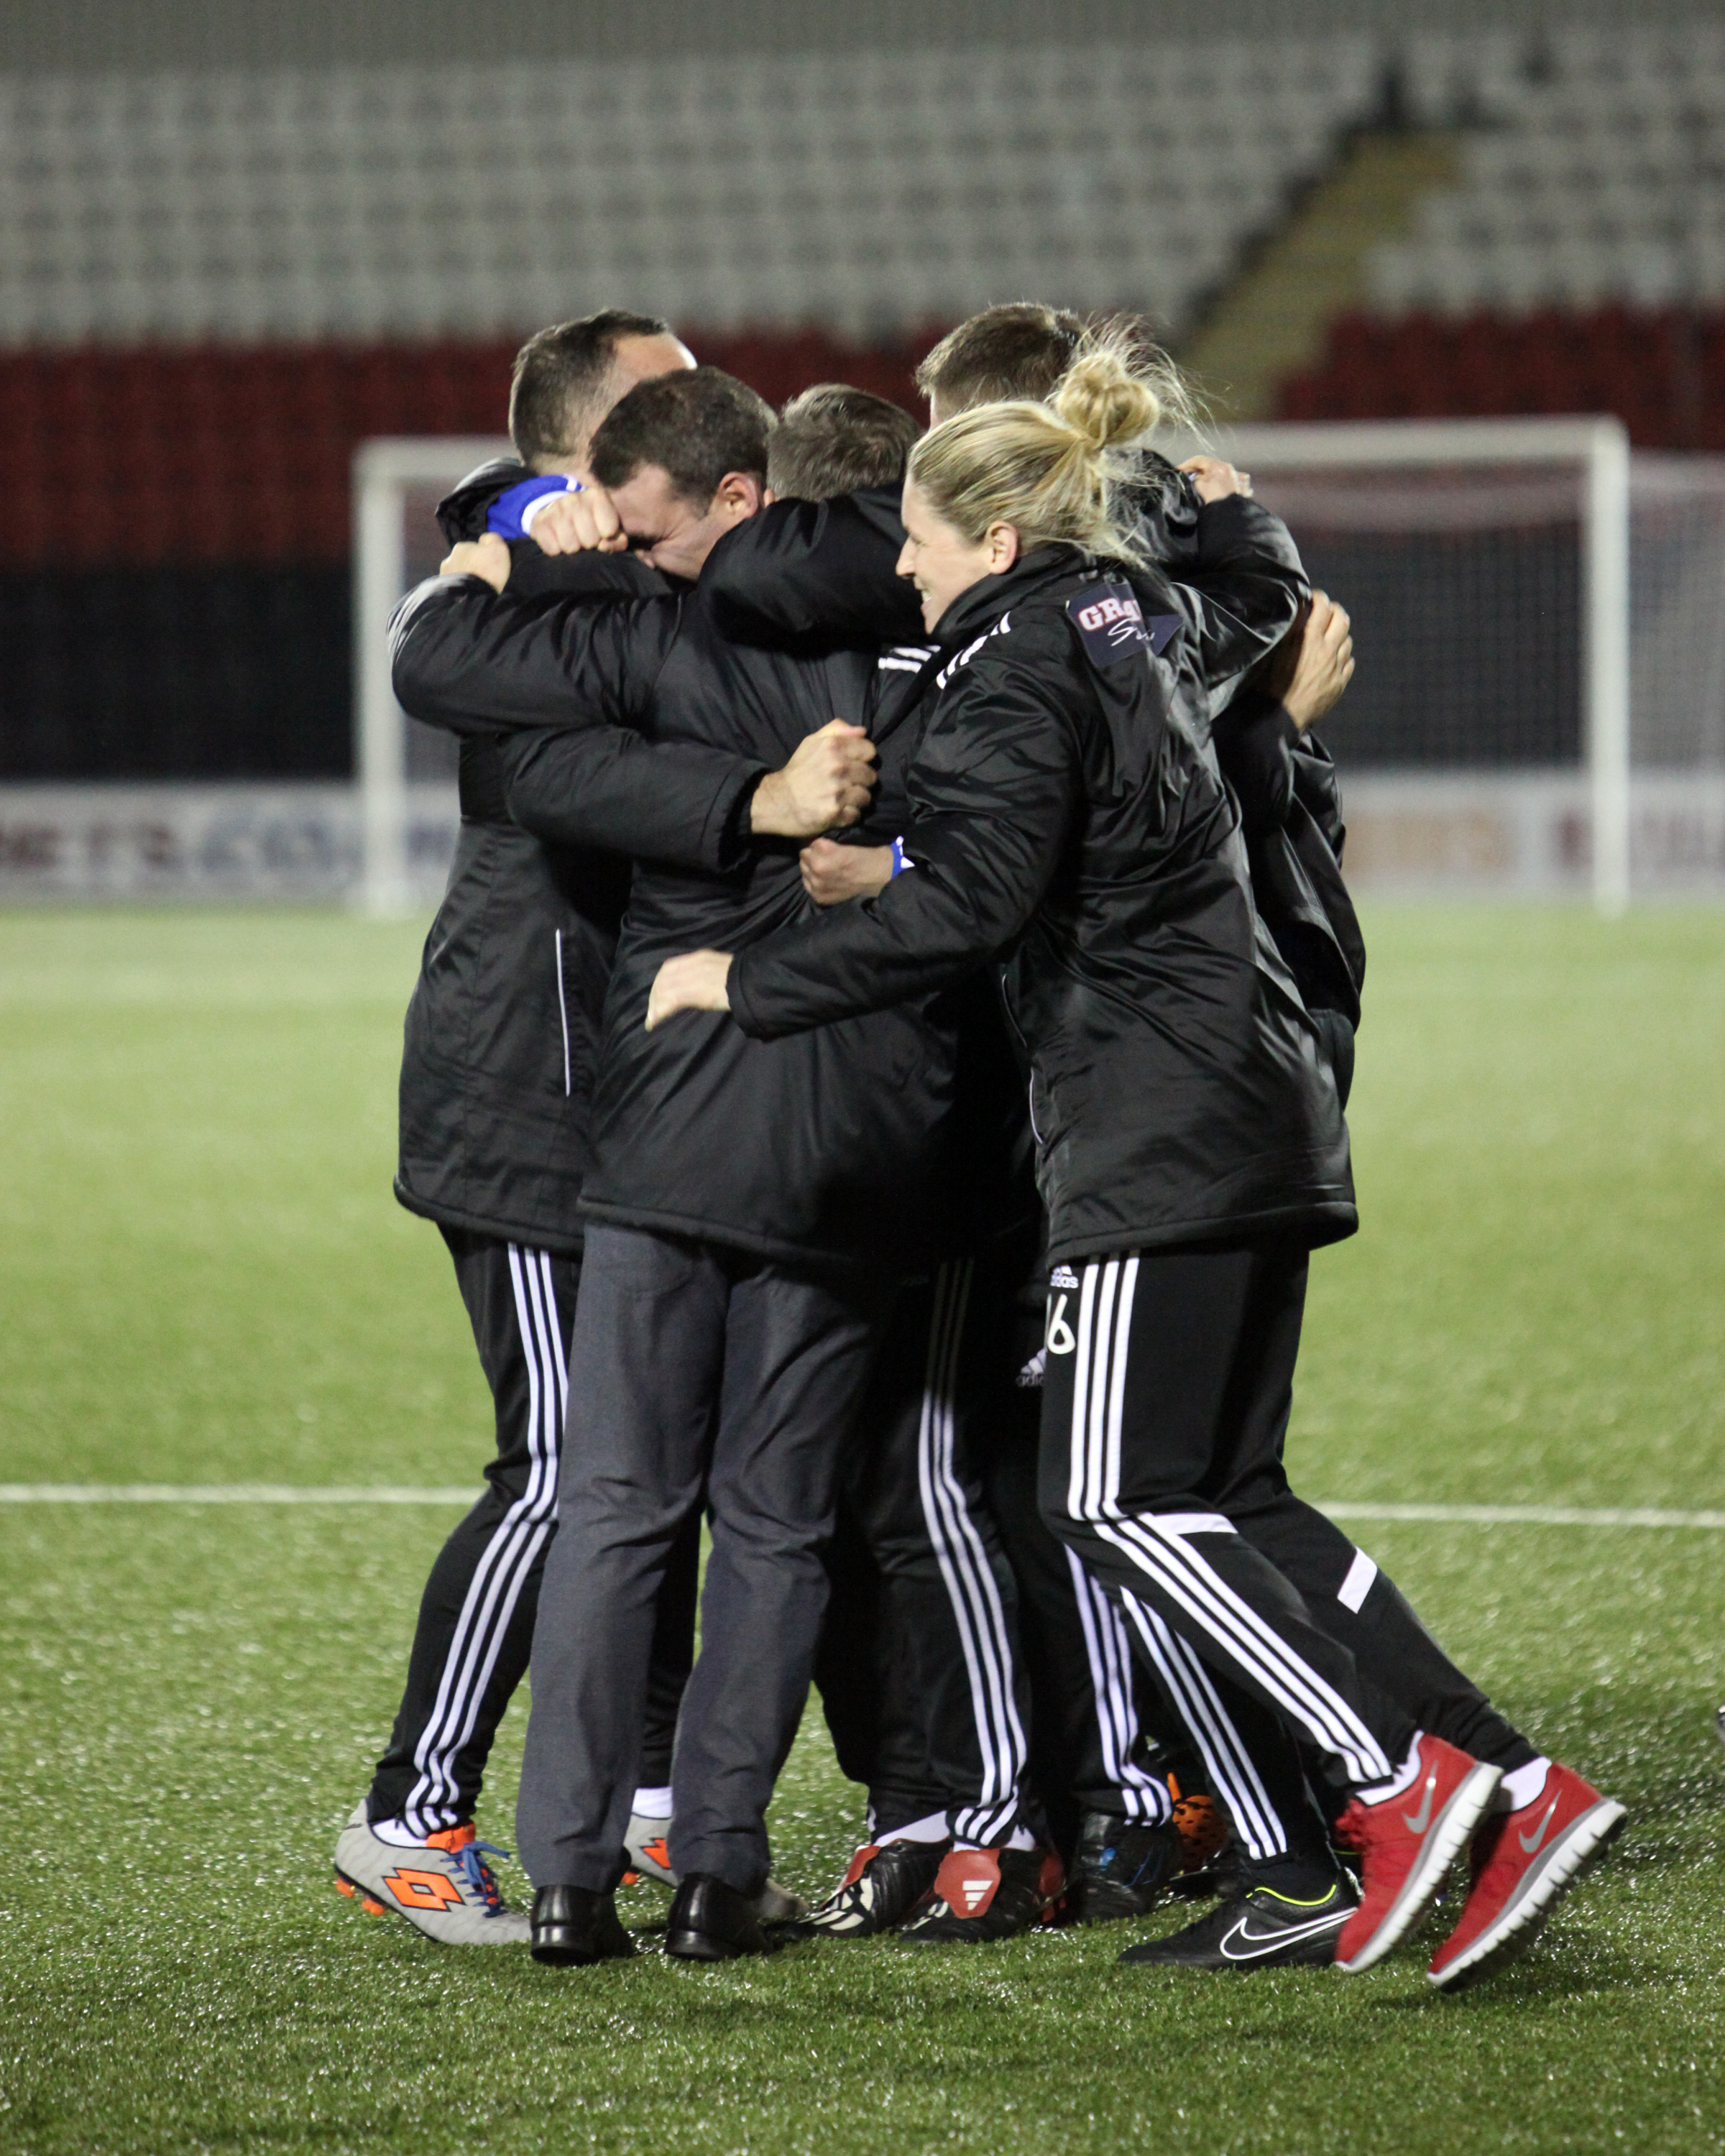 Players and Staff Celebrate win. Image by Andy Buist.